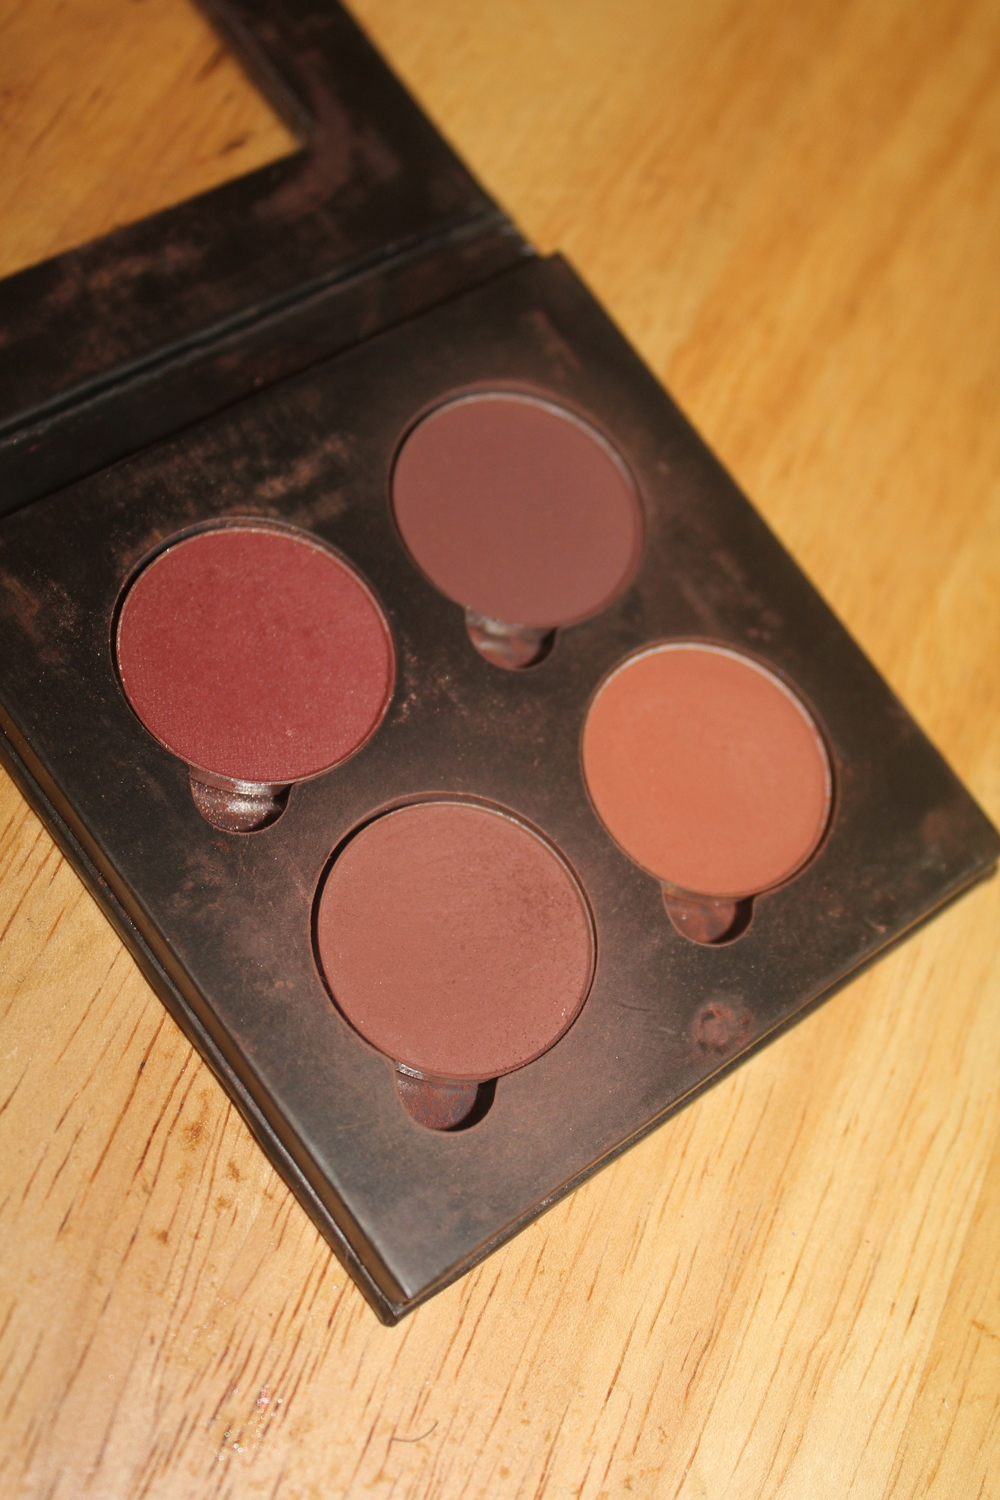 Anastasia Beverly Hills custom made matte palette ( Red Earth, Sienna, Beauty Mark and Makeup Geek Shadow in Bitten)